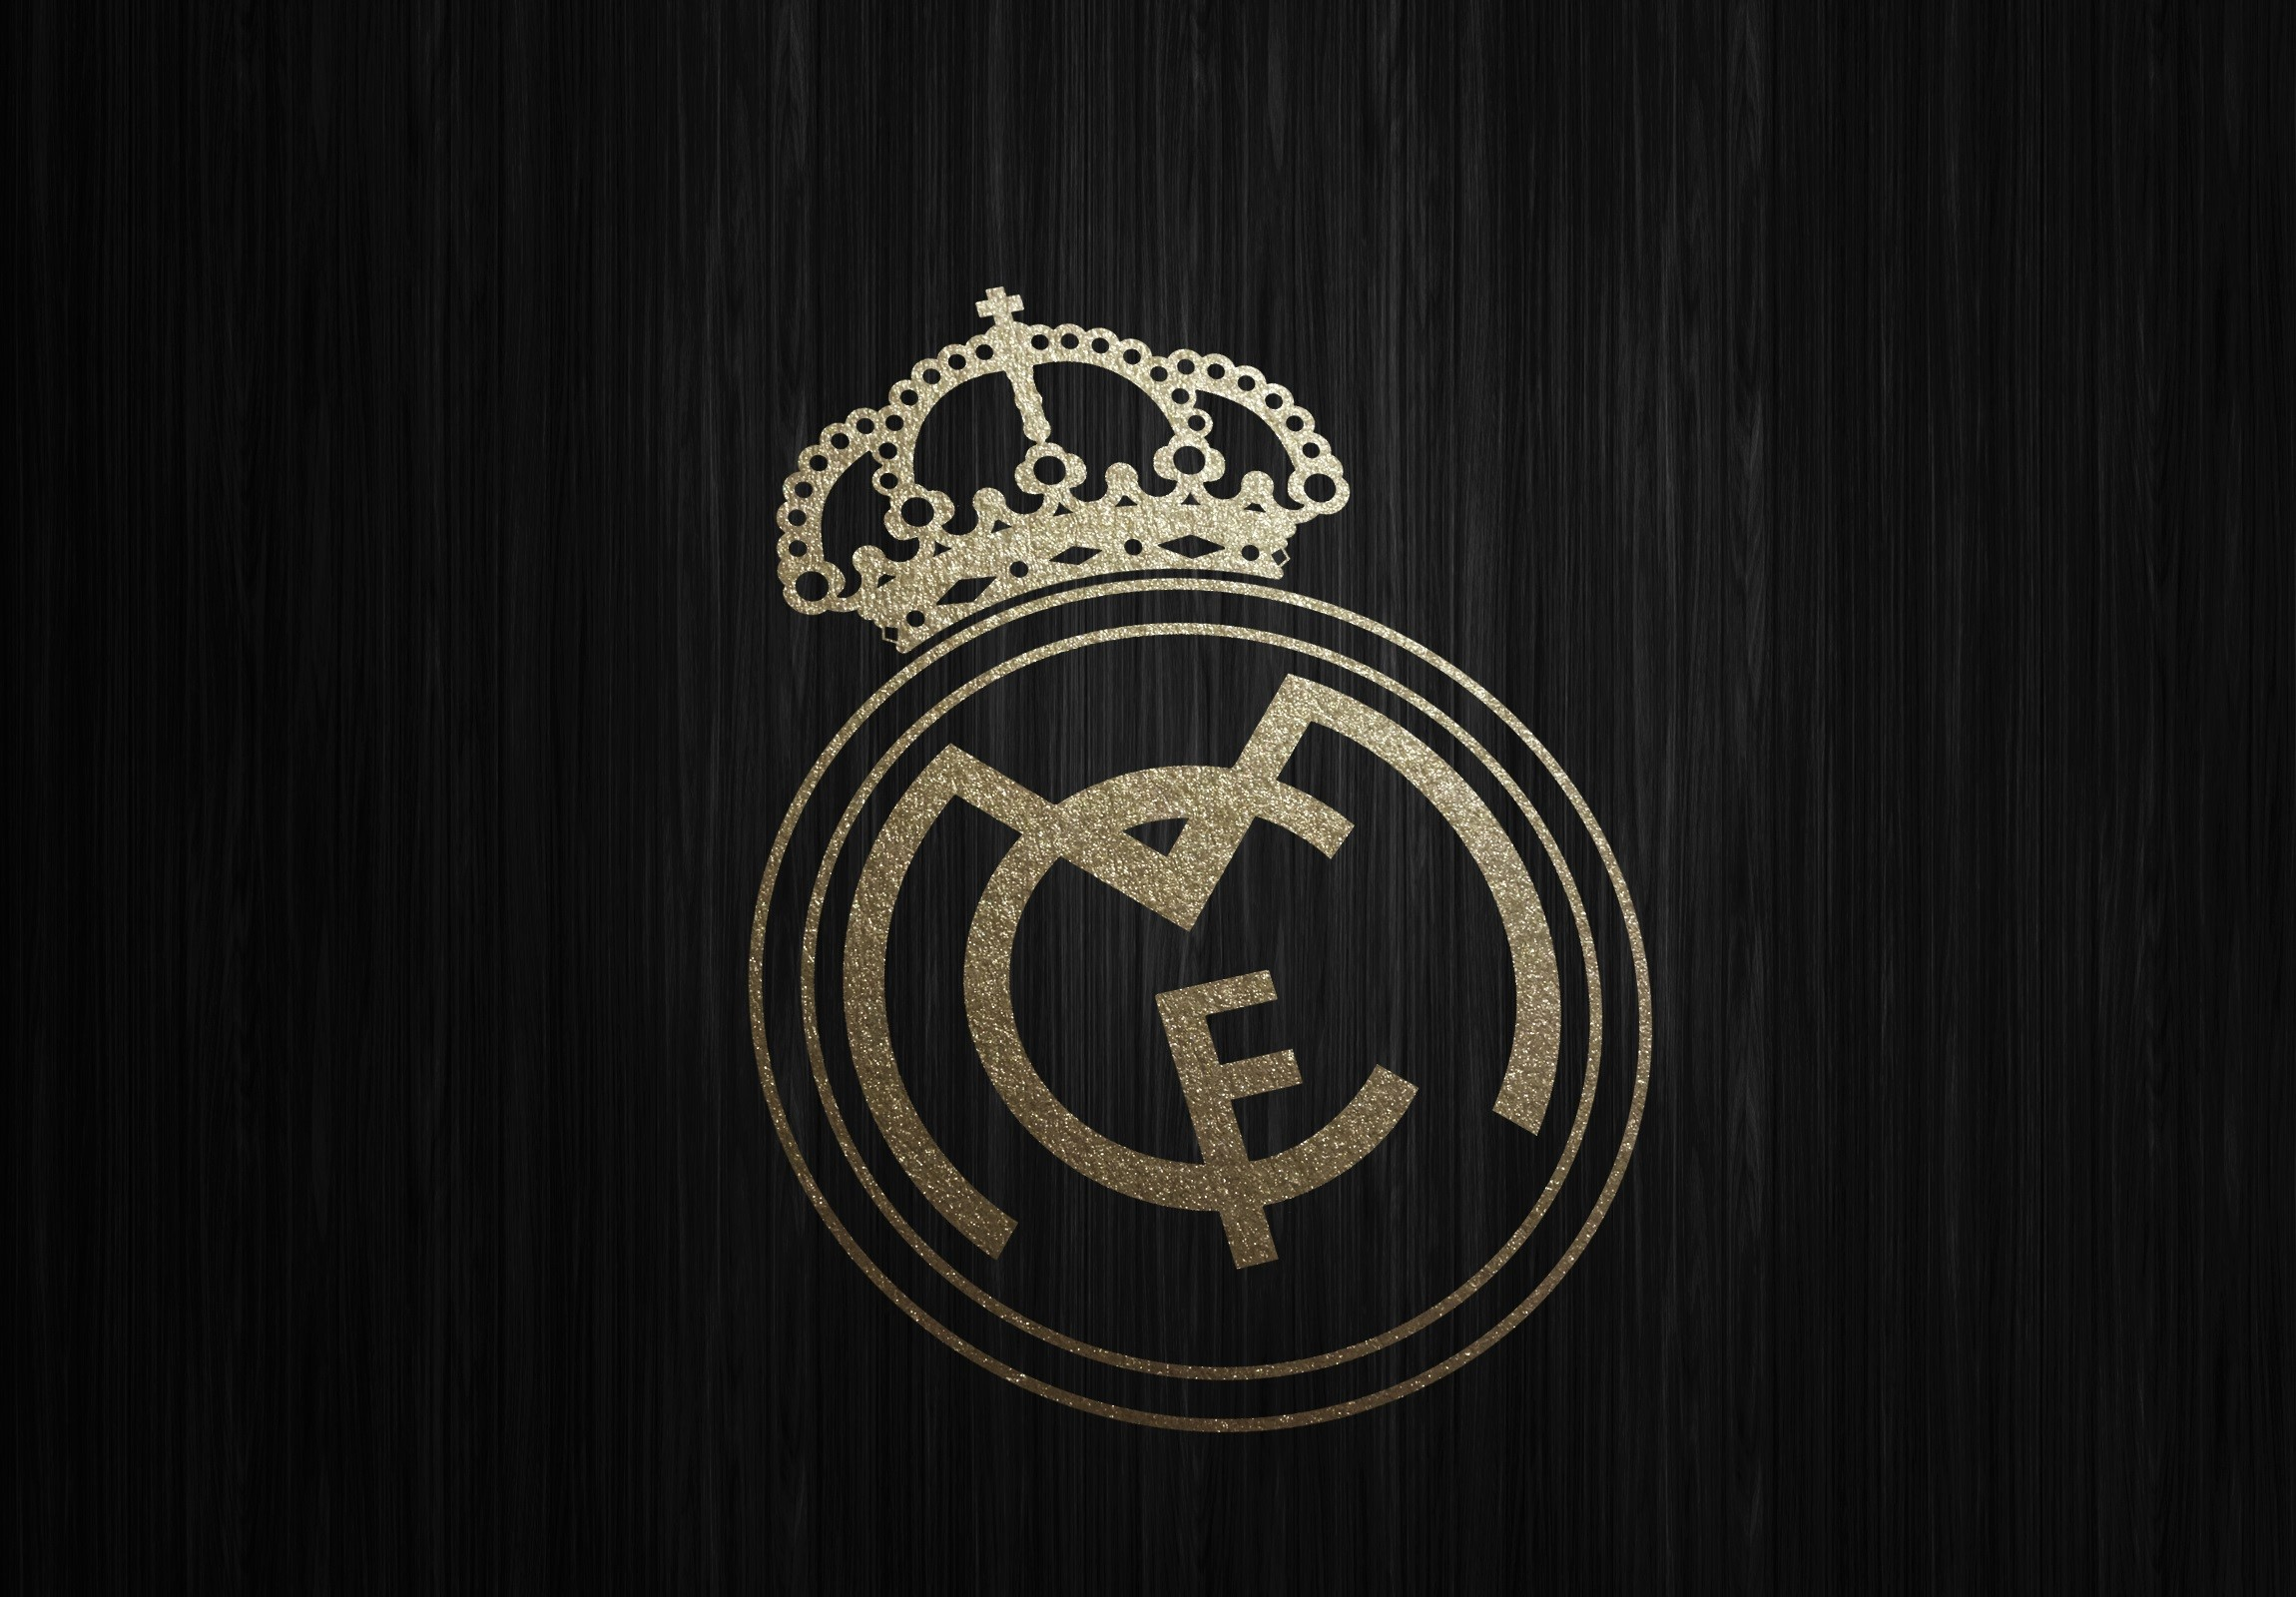 FC Real Madrid Background images